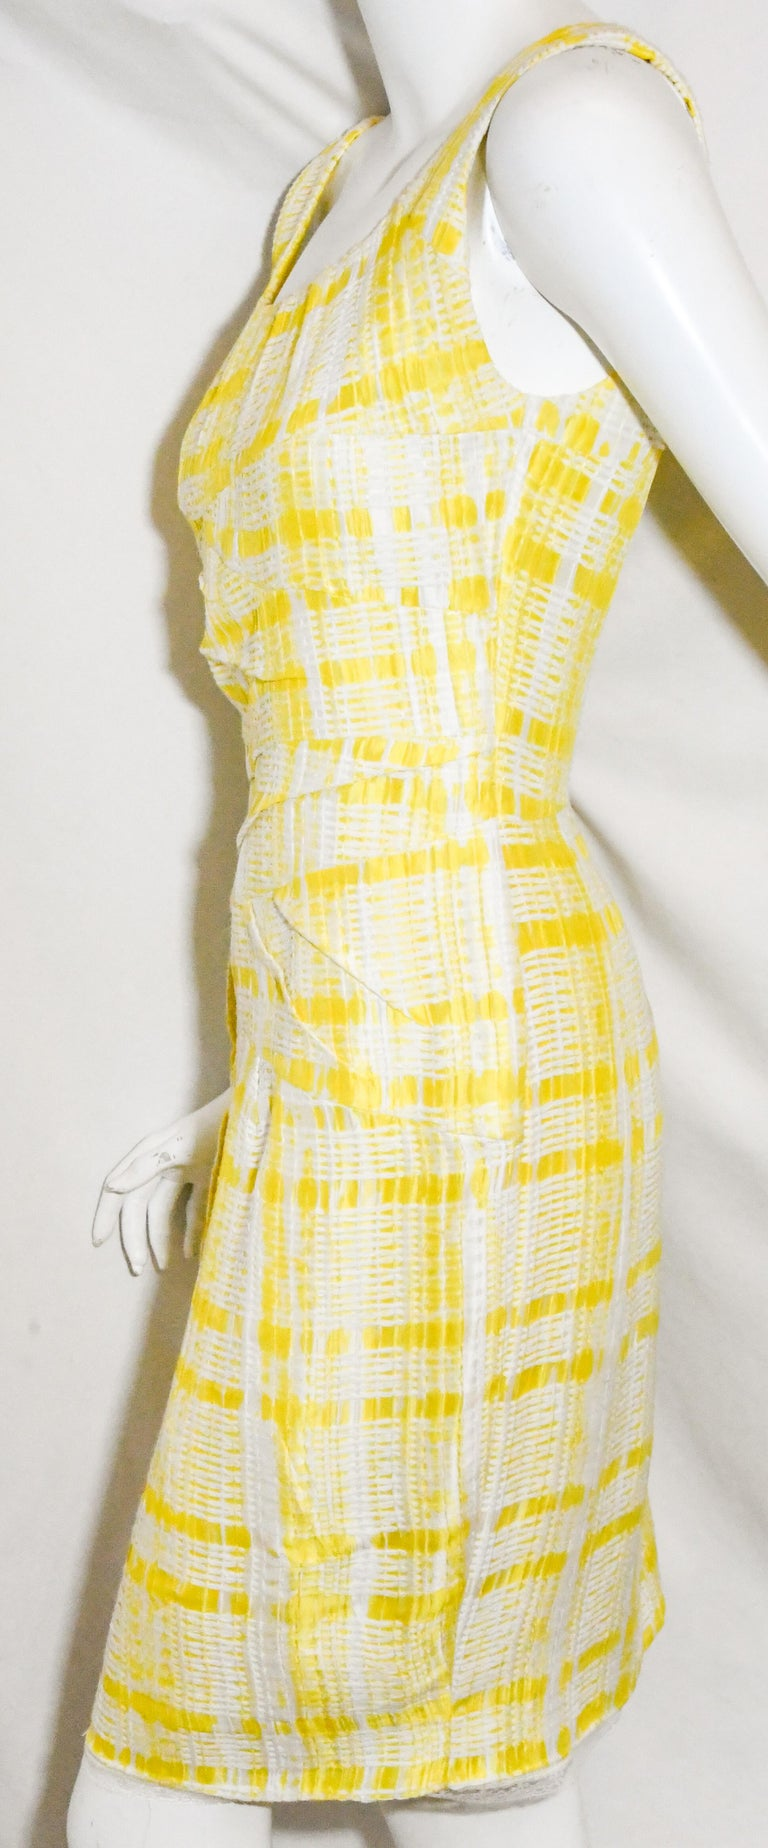 Oscar de la Renta yellow and white check textured fabric includes a scoop neckline and is slightly This dress is elegant yet contemporary.  Dress is lined and is gathered at the neckline and, for closure, includes a long zipper at back with a vent